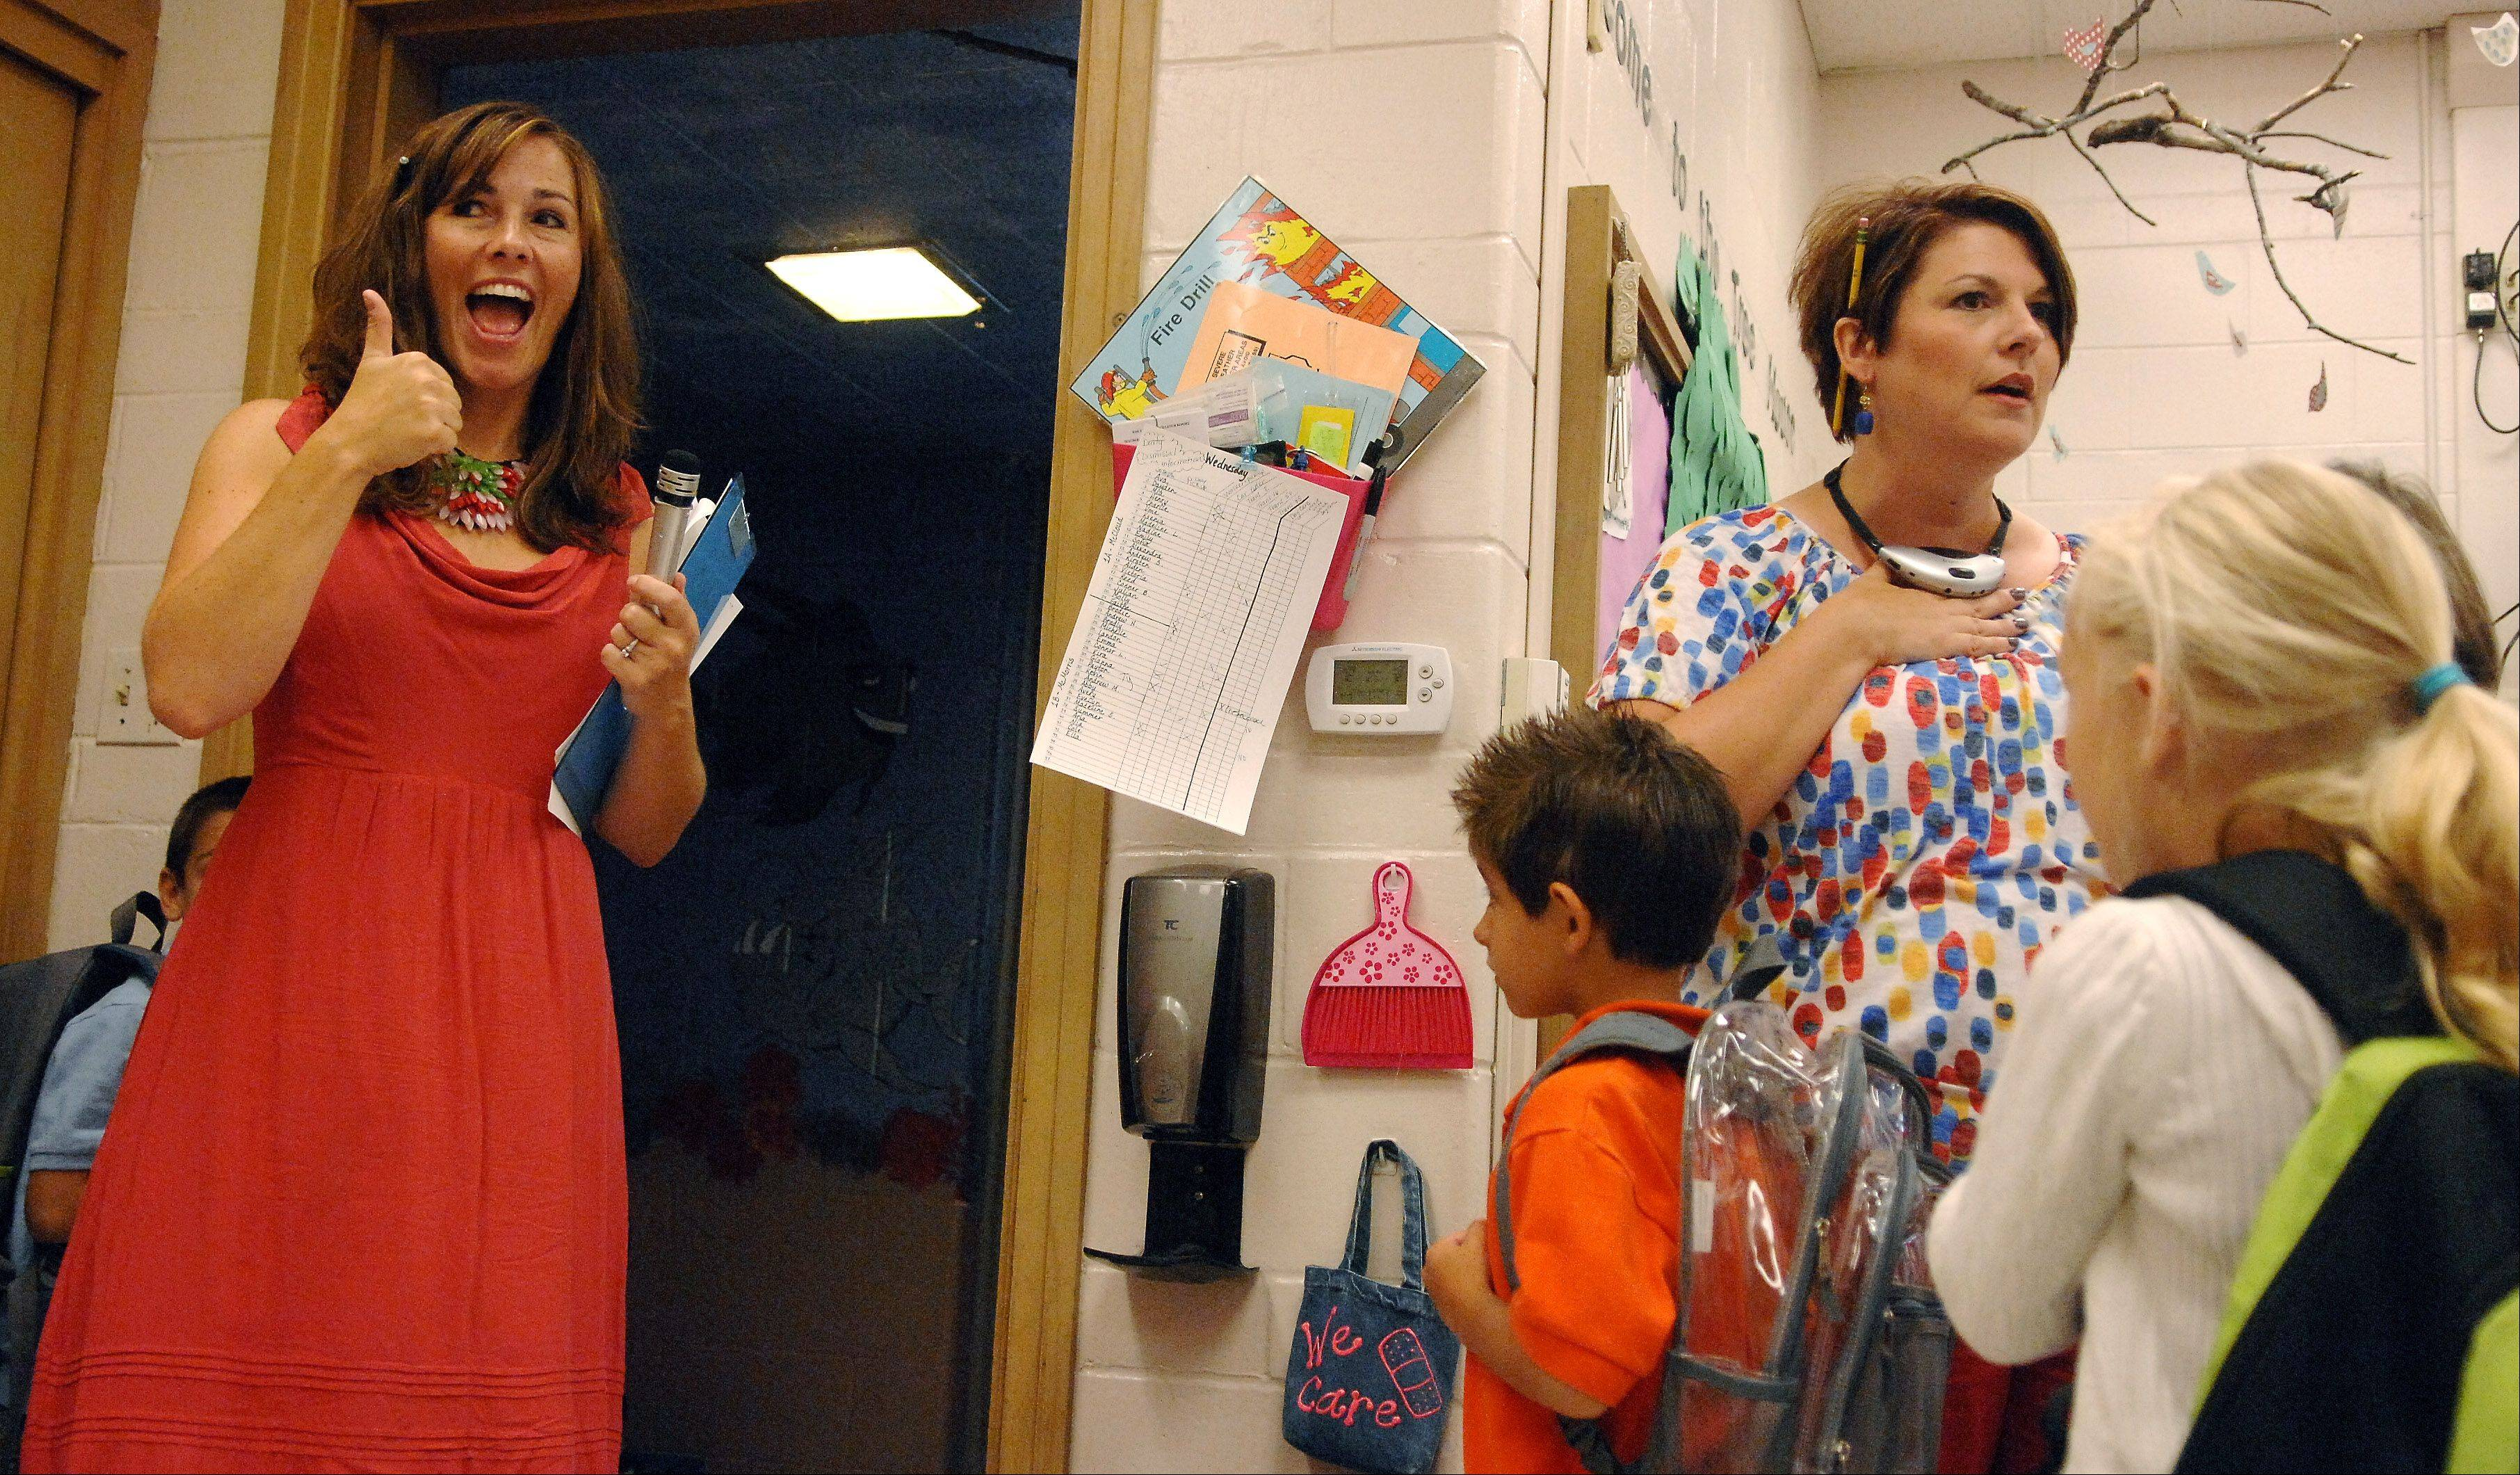 First-grade teacher Marti McCloud gives a thumbs-up to the performance of her students while her co-teacher Lisa McMorris gives them instructions before moving to their other class across the hall during the first day of school at Lincoln Elemetary School in St. Charles Wednesday. McCloud and McMorris are team teaching a class of 44 students. This is the first year for team teaching at Lincoln and they're using it for 2 first-grade classes.